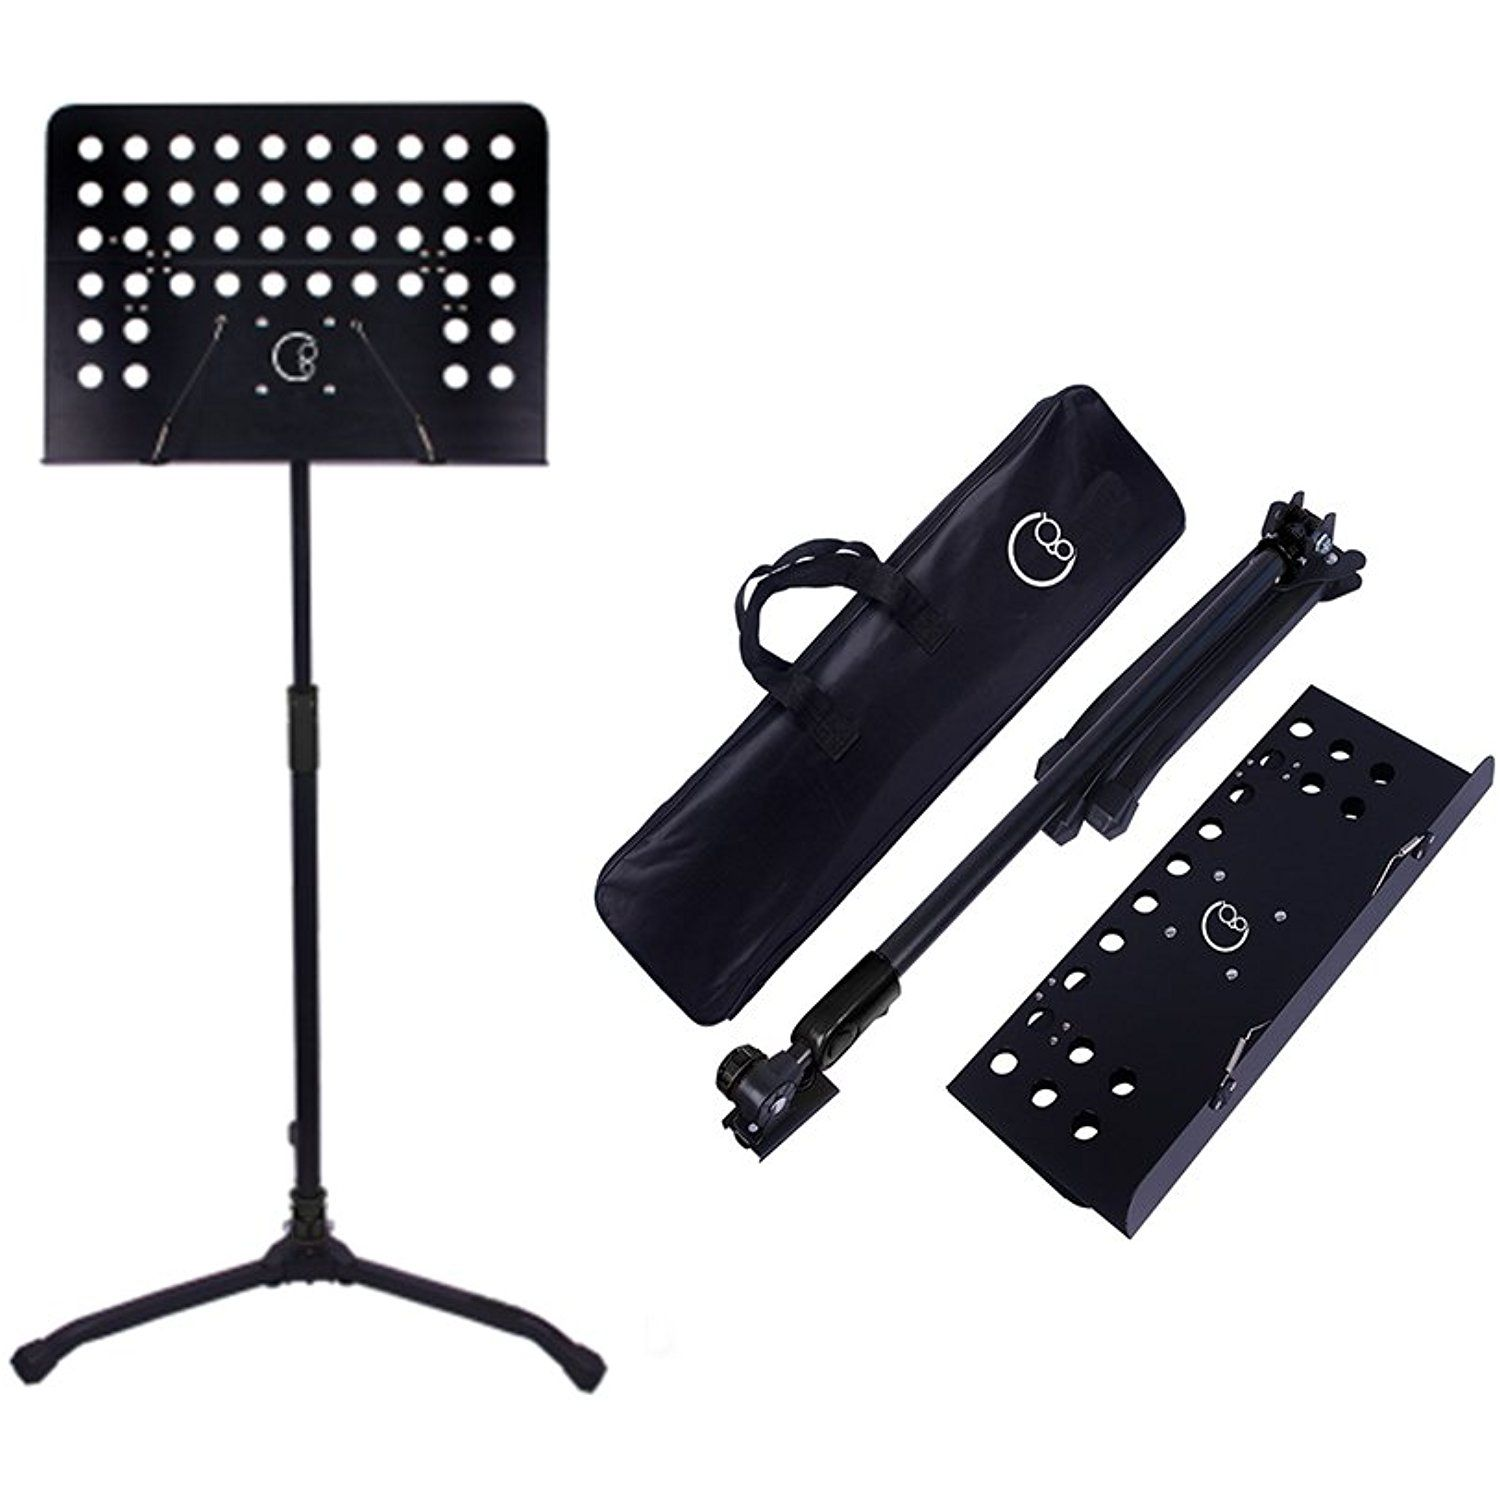 Z Style Adjustable and Portable Heavy Duty Music Stand for Kids and Adults Plixio Piano Keyboard Stand Fits 54-88 Key Electric Pianos